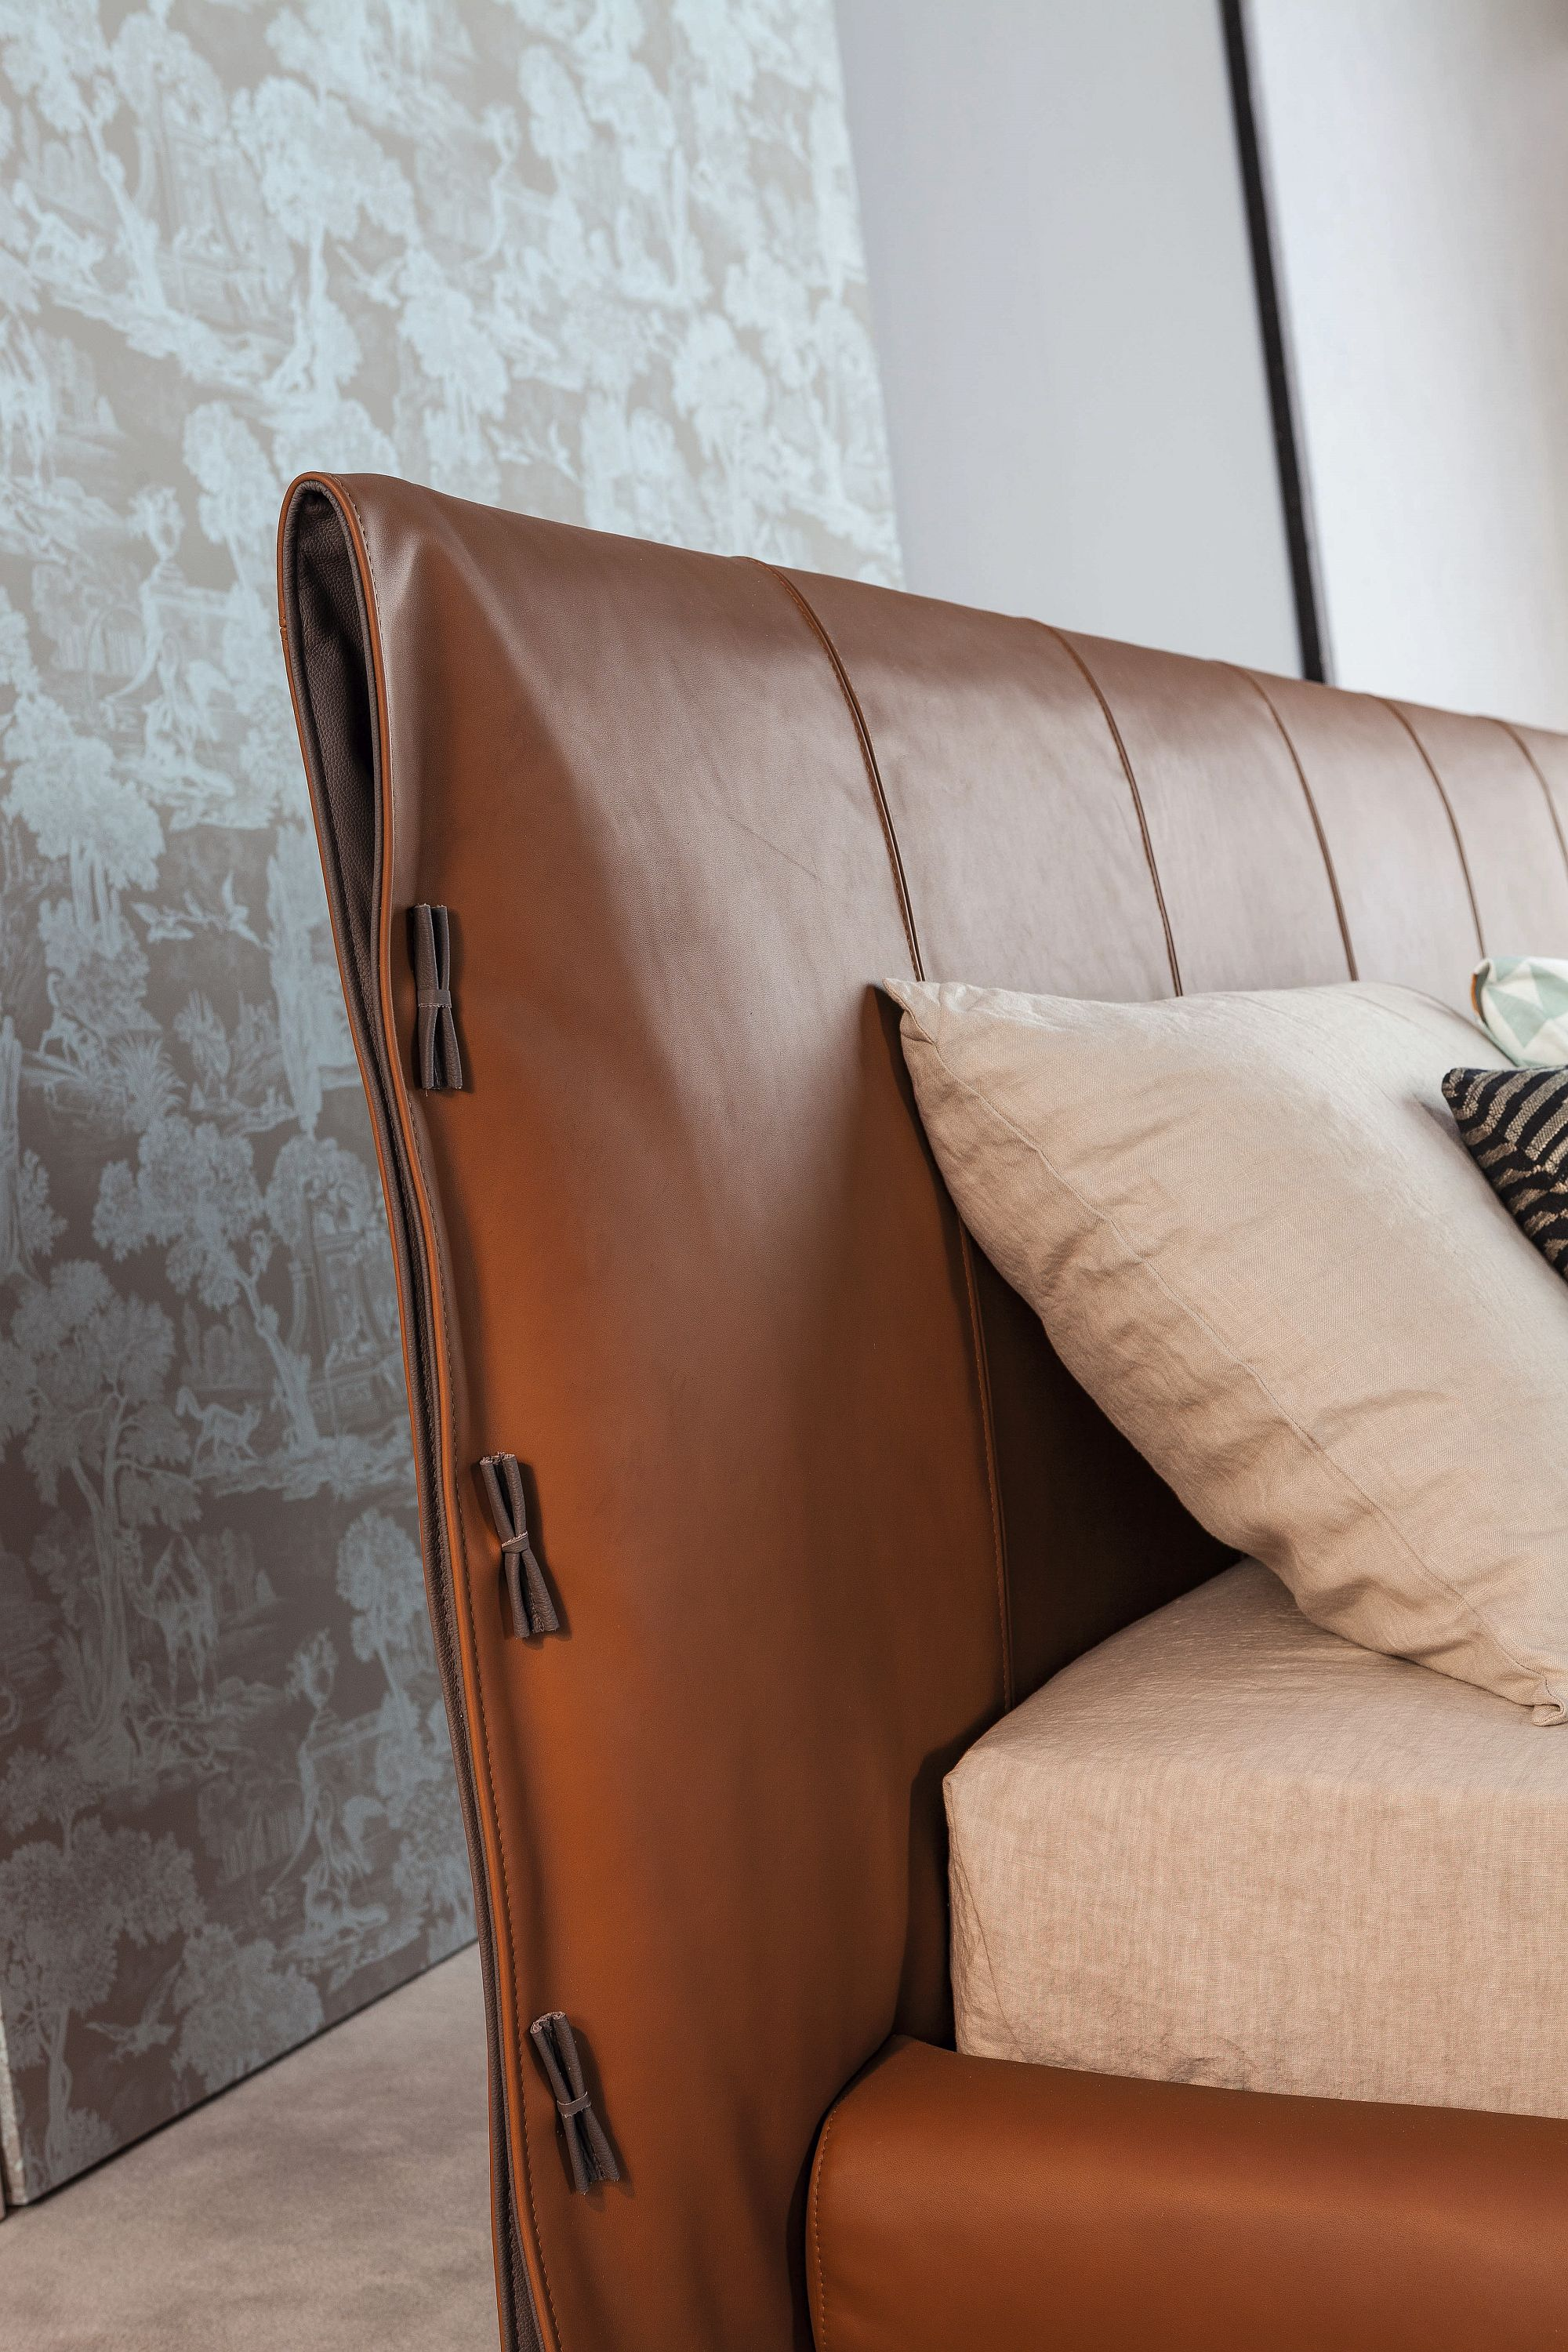 Leather-gives-the-bed-a-polished-contemporary-vibe